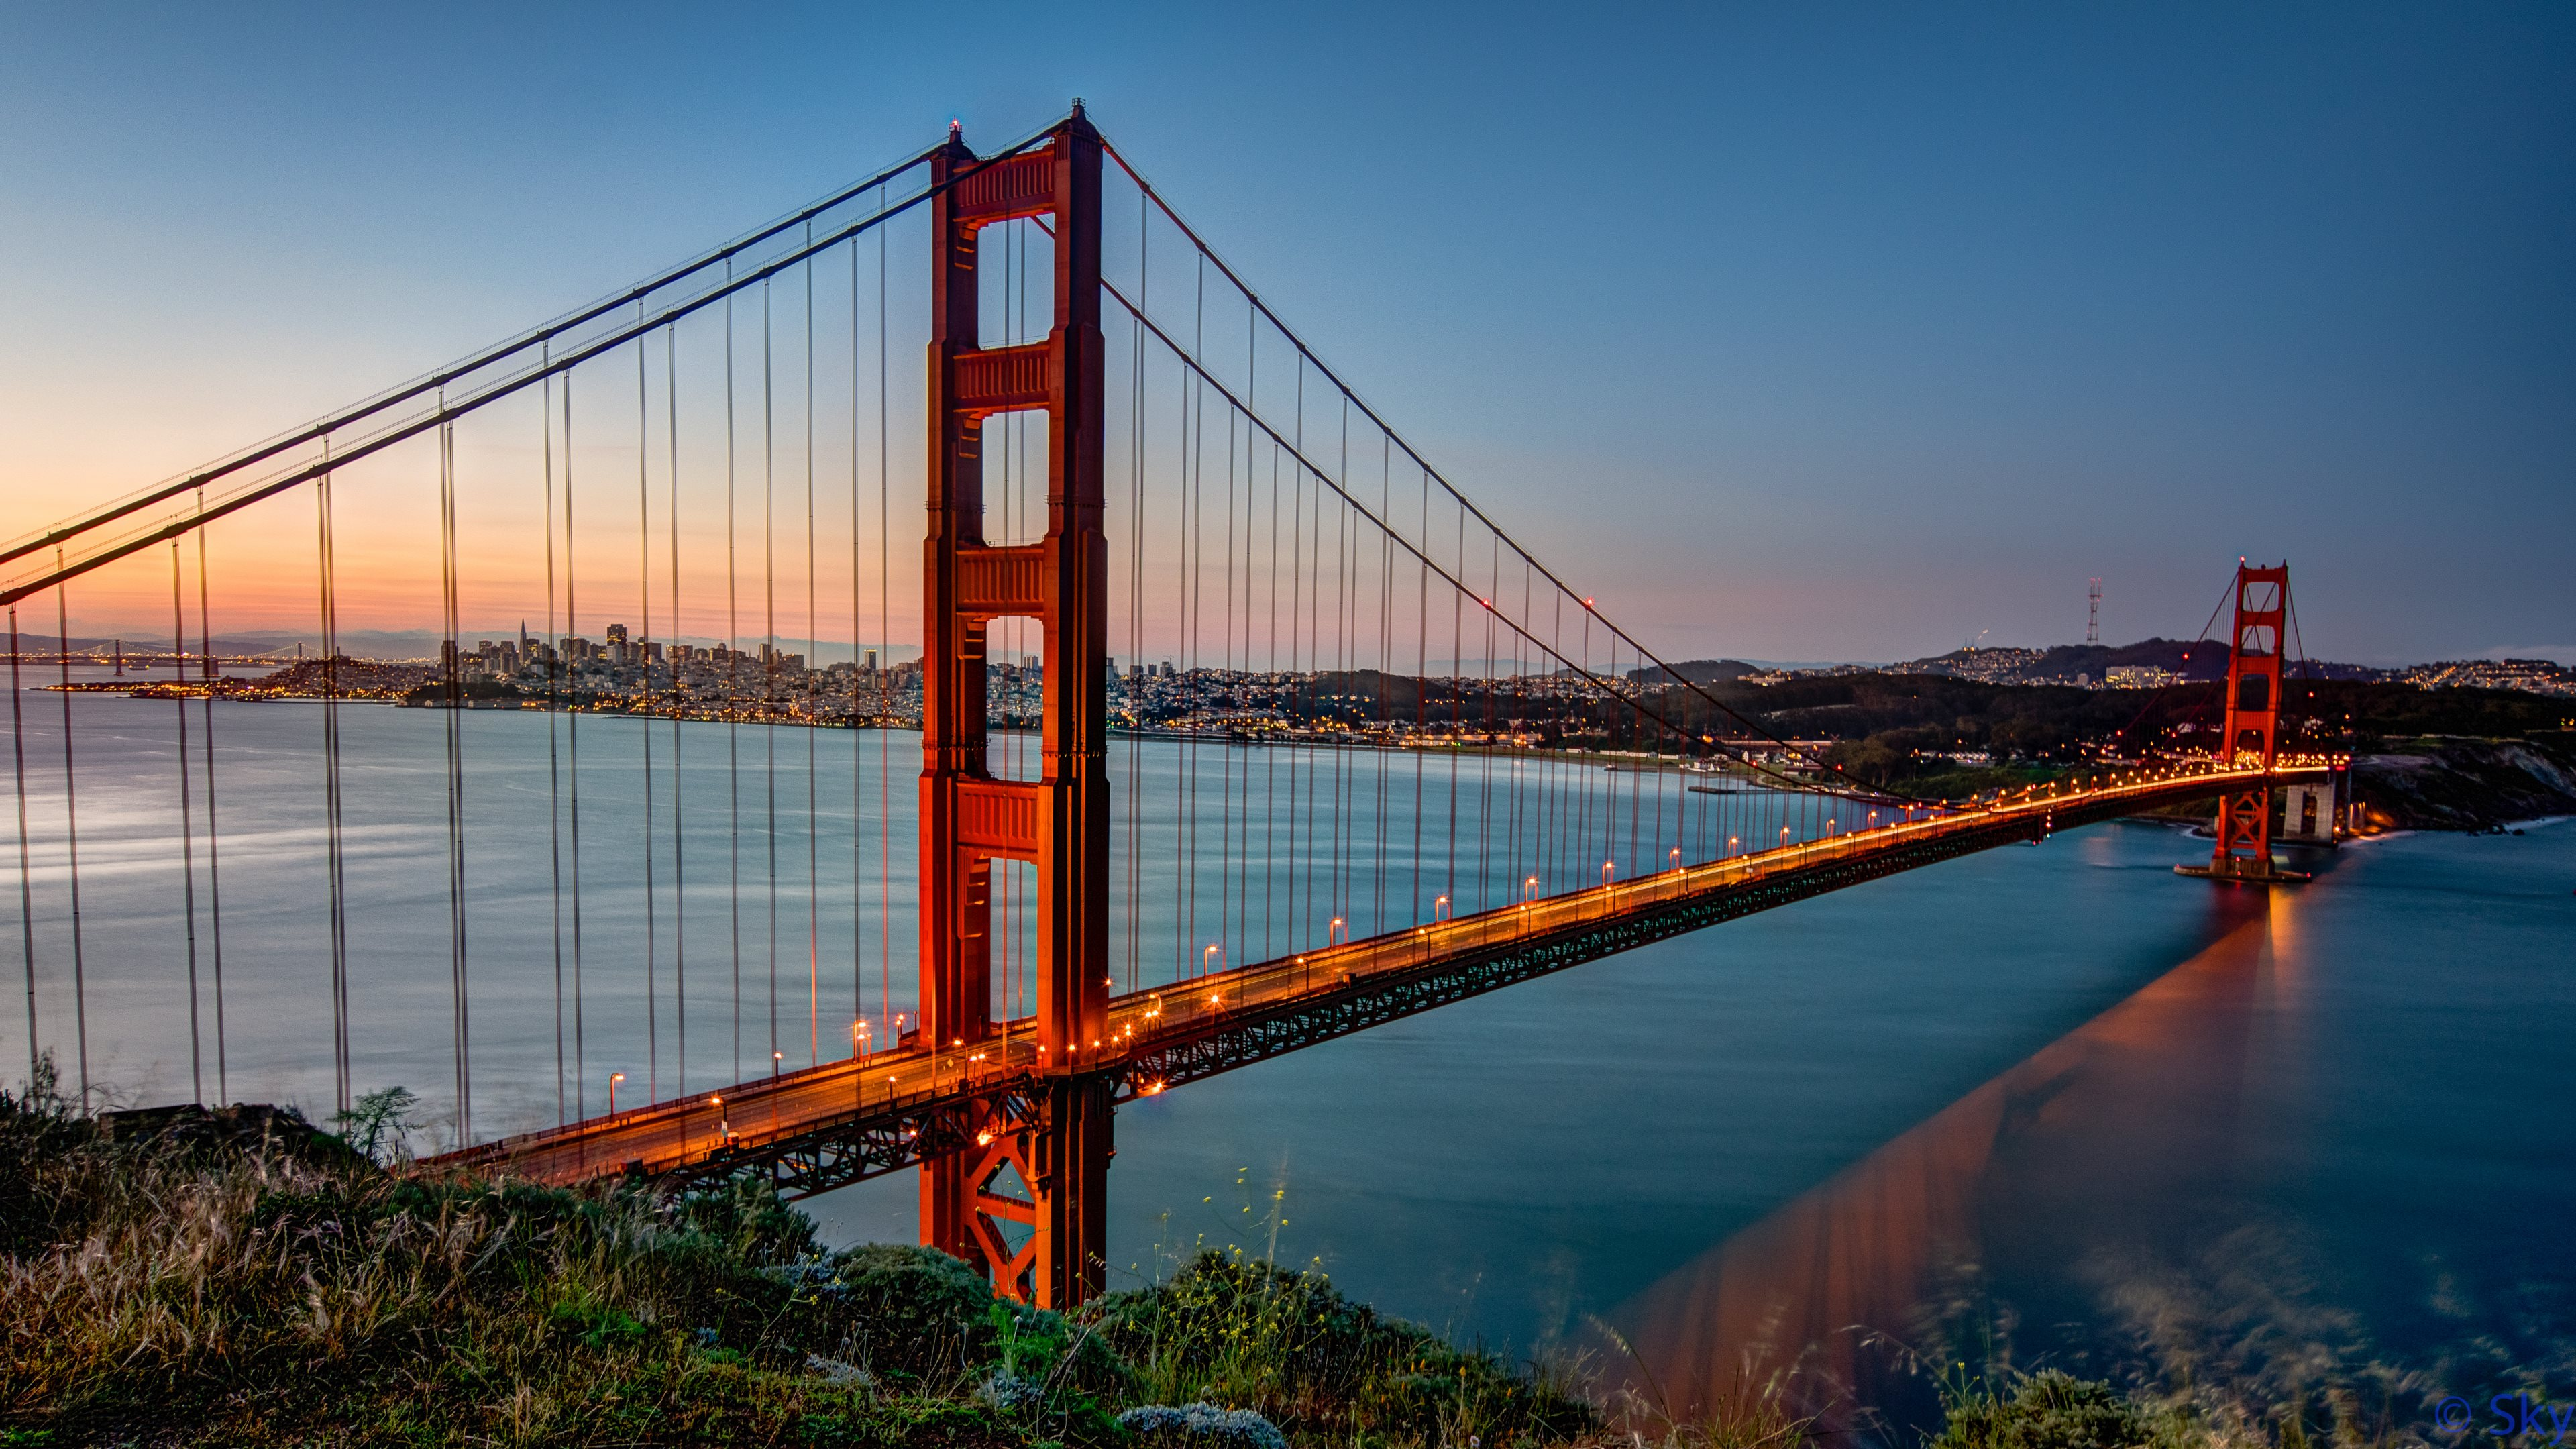 Bridge Computer Wallpapers, Desktop Backgrounds | 3840x2160 | ID ...